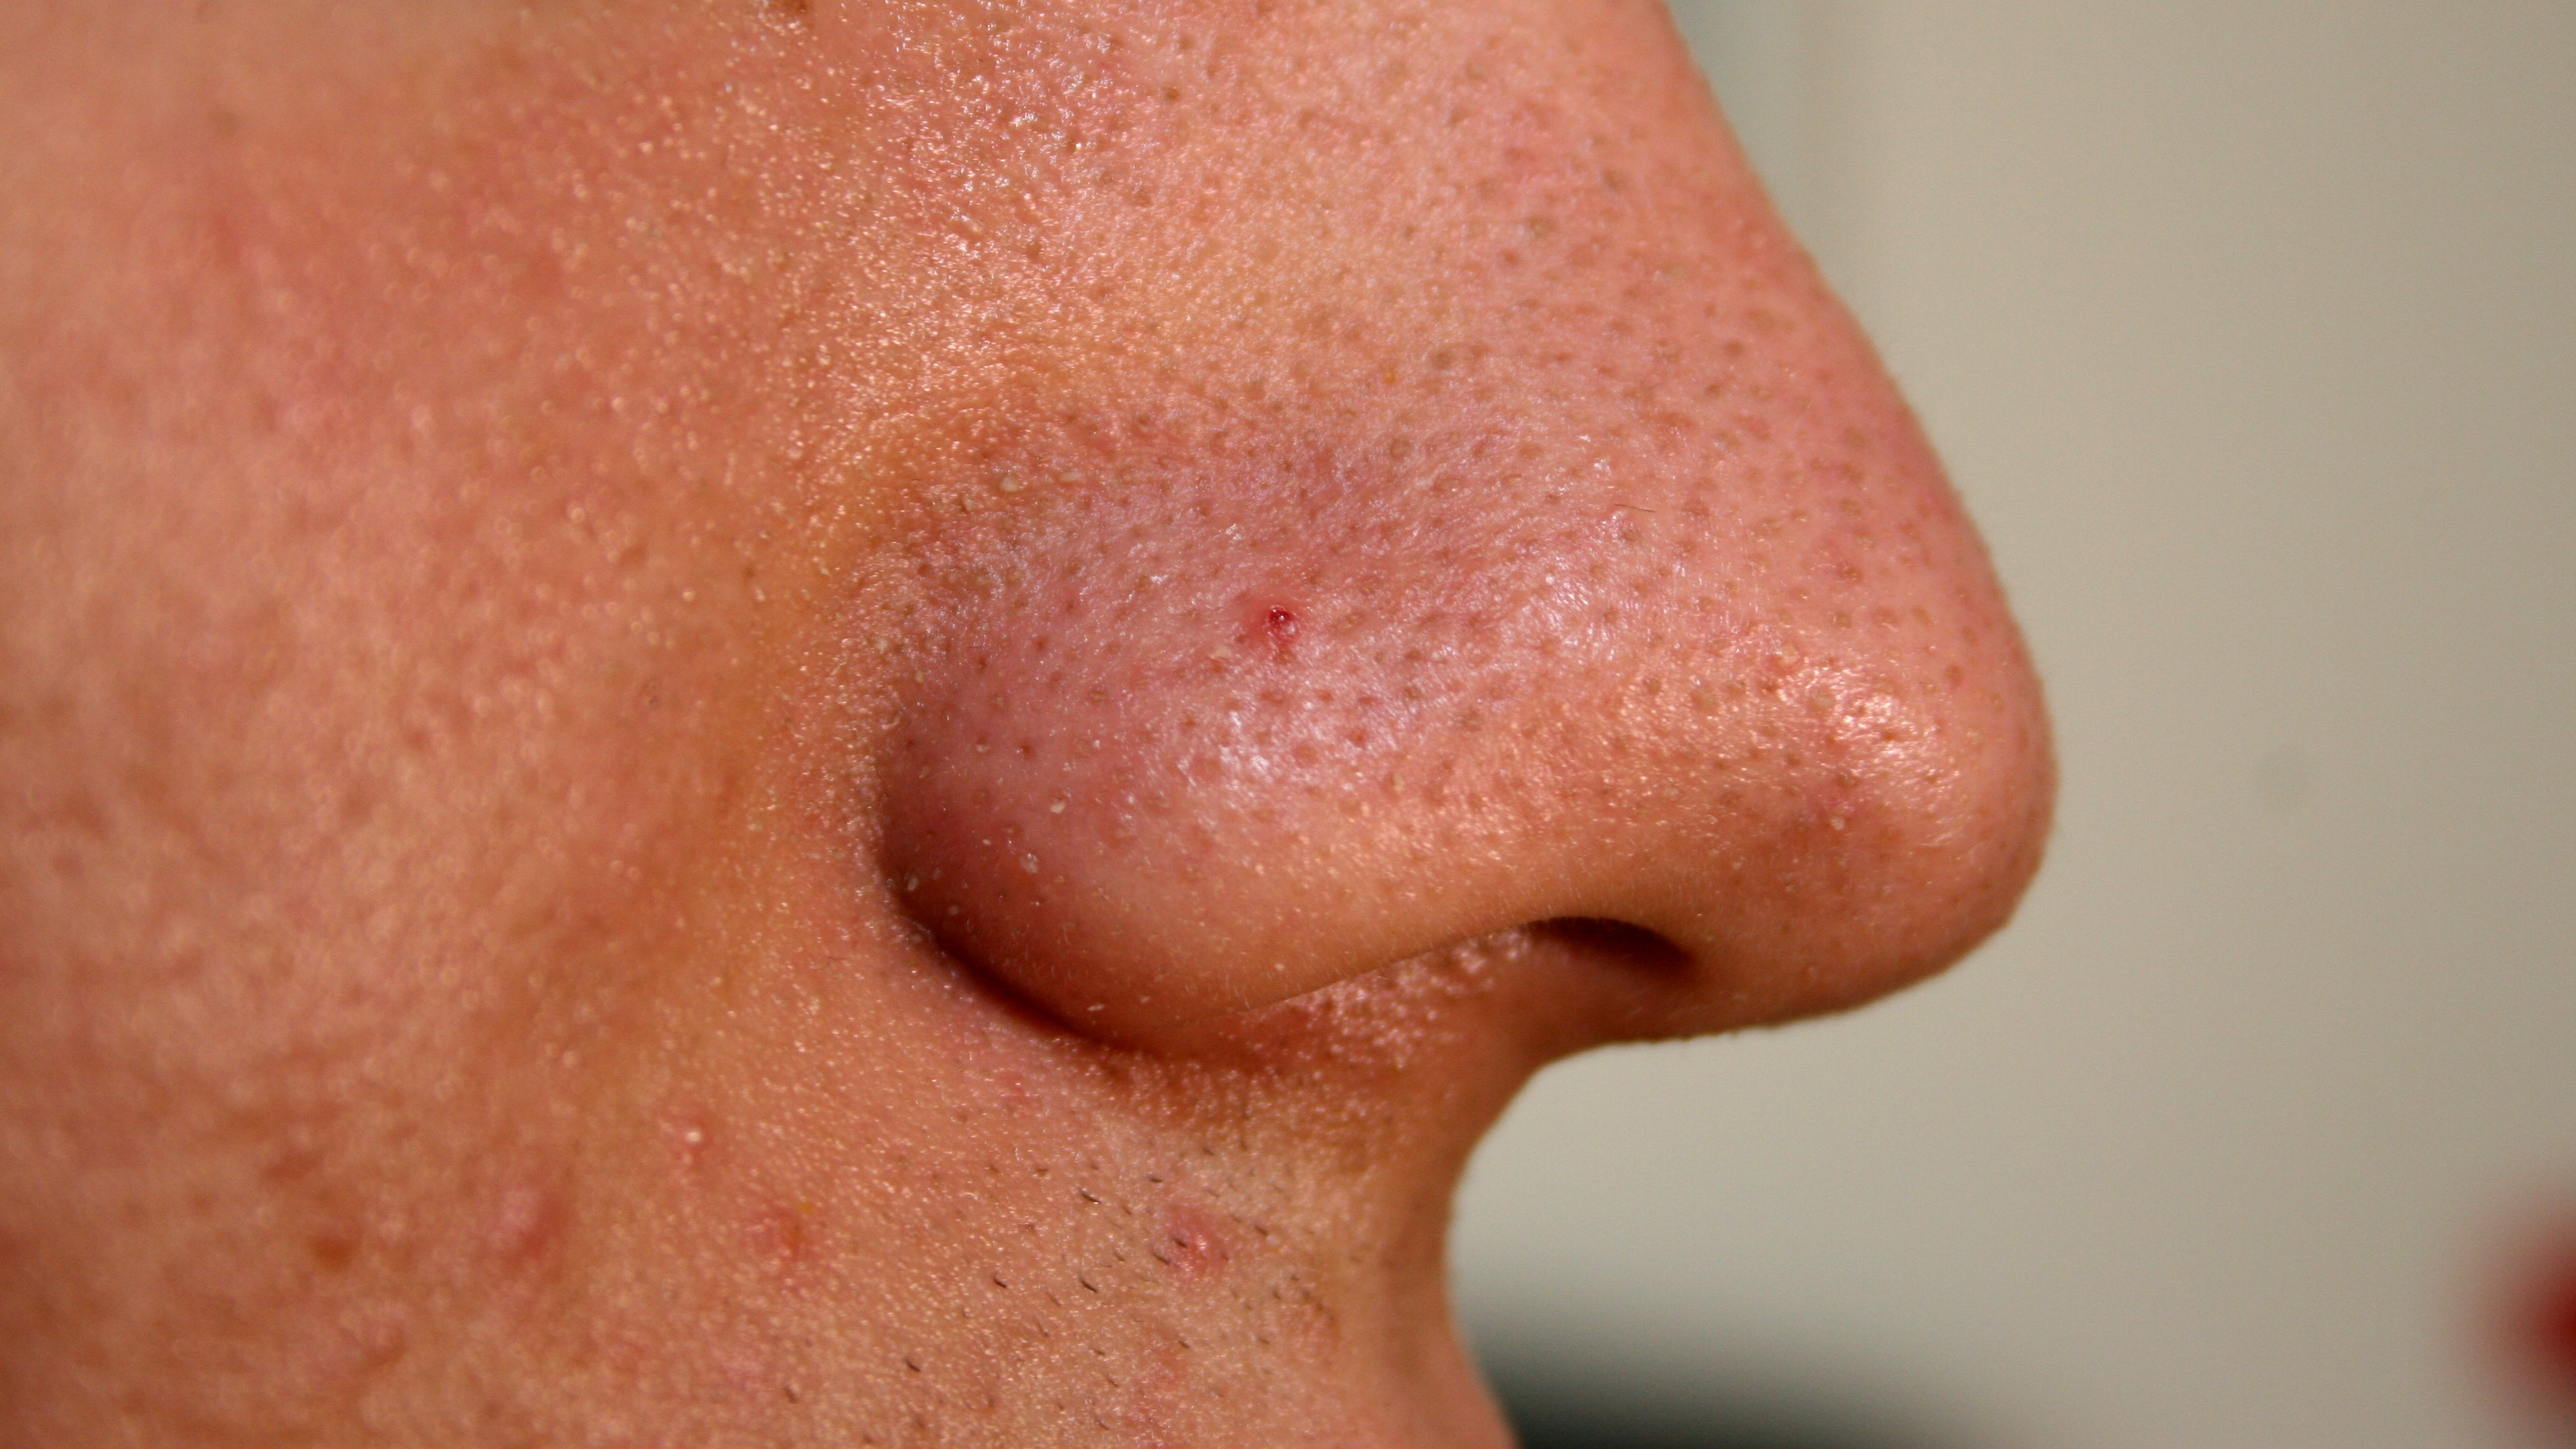 New Acne-Fighting Compound Blocks Inflammation And Kills Bacteria Without Irritating Side Effects